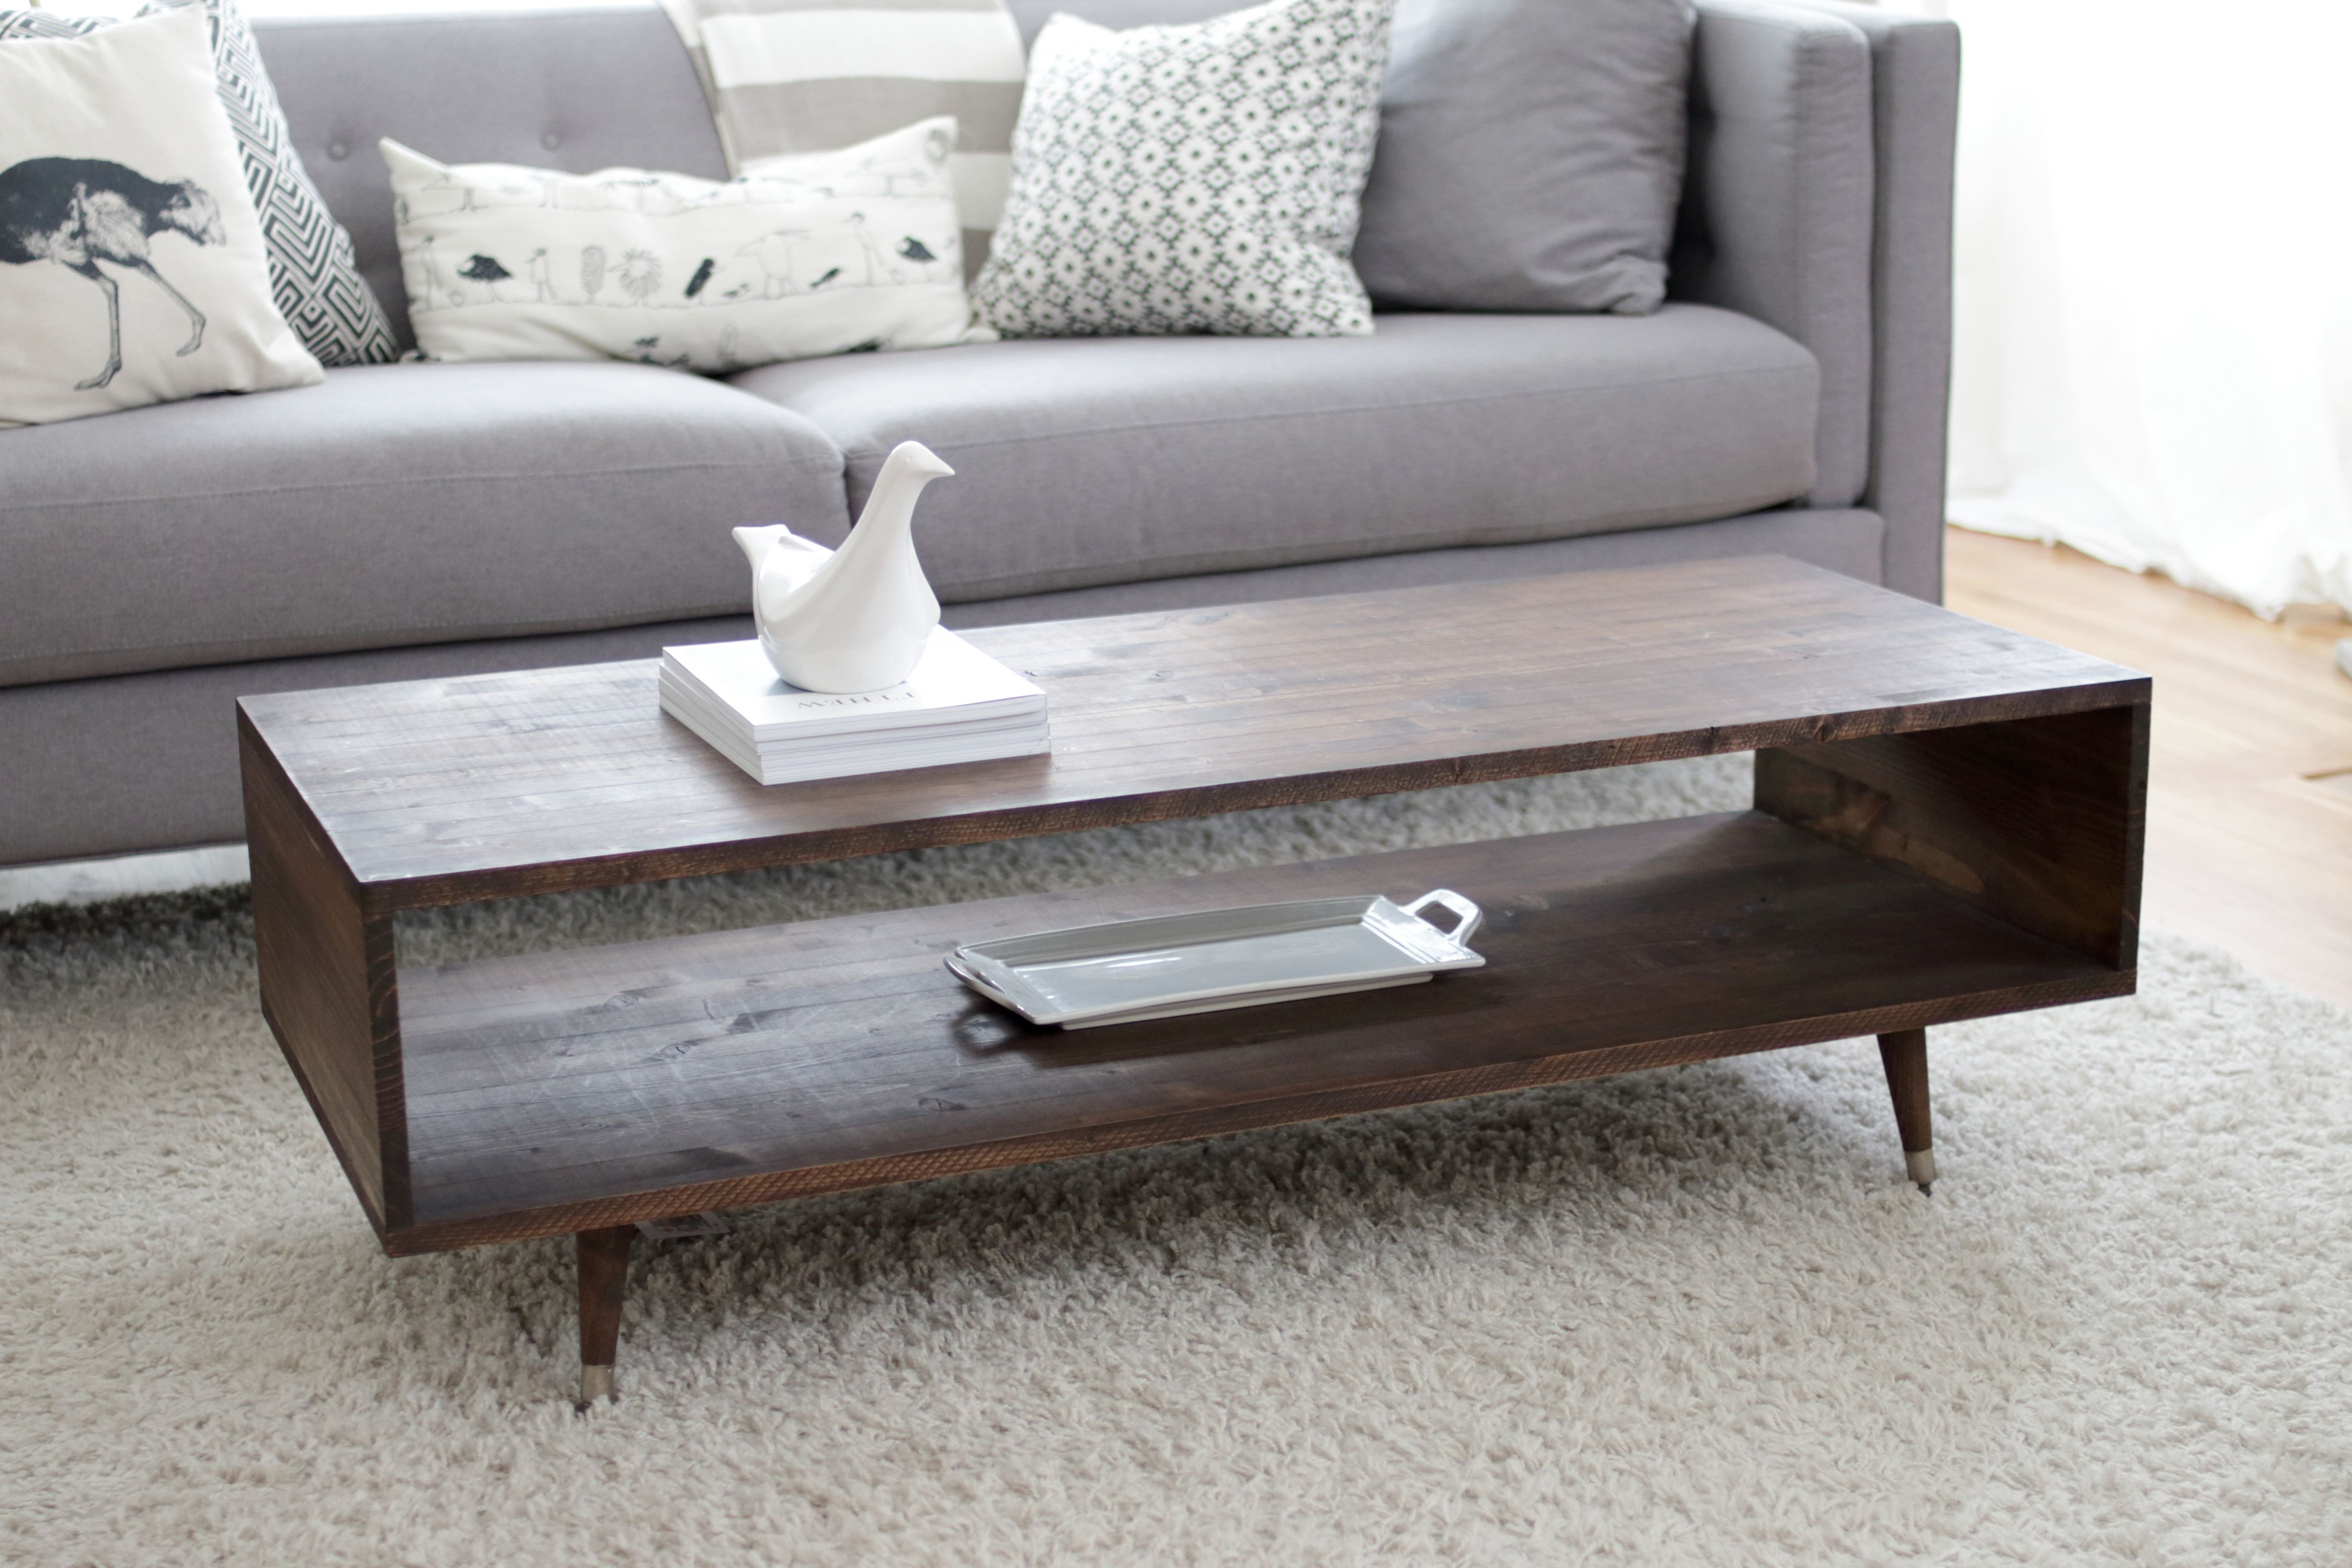 Build Your Own Mid Century Modern Coffee Table For 60 Bay On A Budget Modern Coffee Table Diy Mid Century Modern Coffee Table Coffee Table